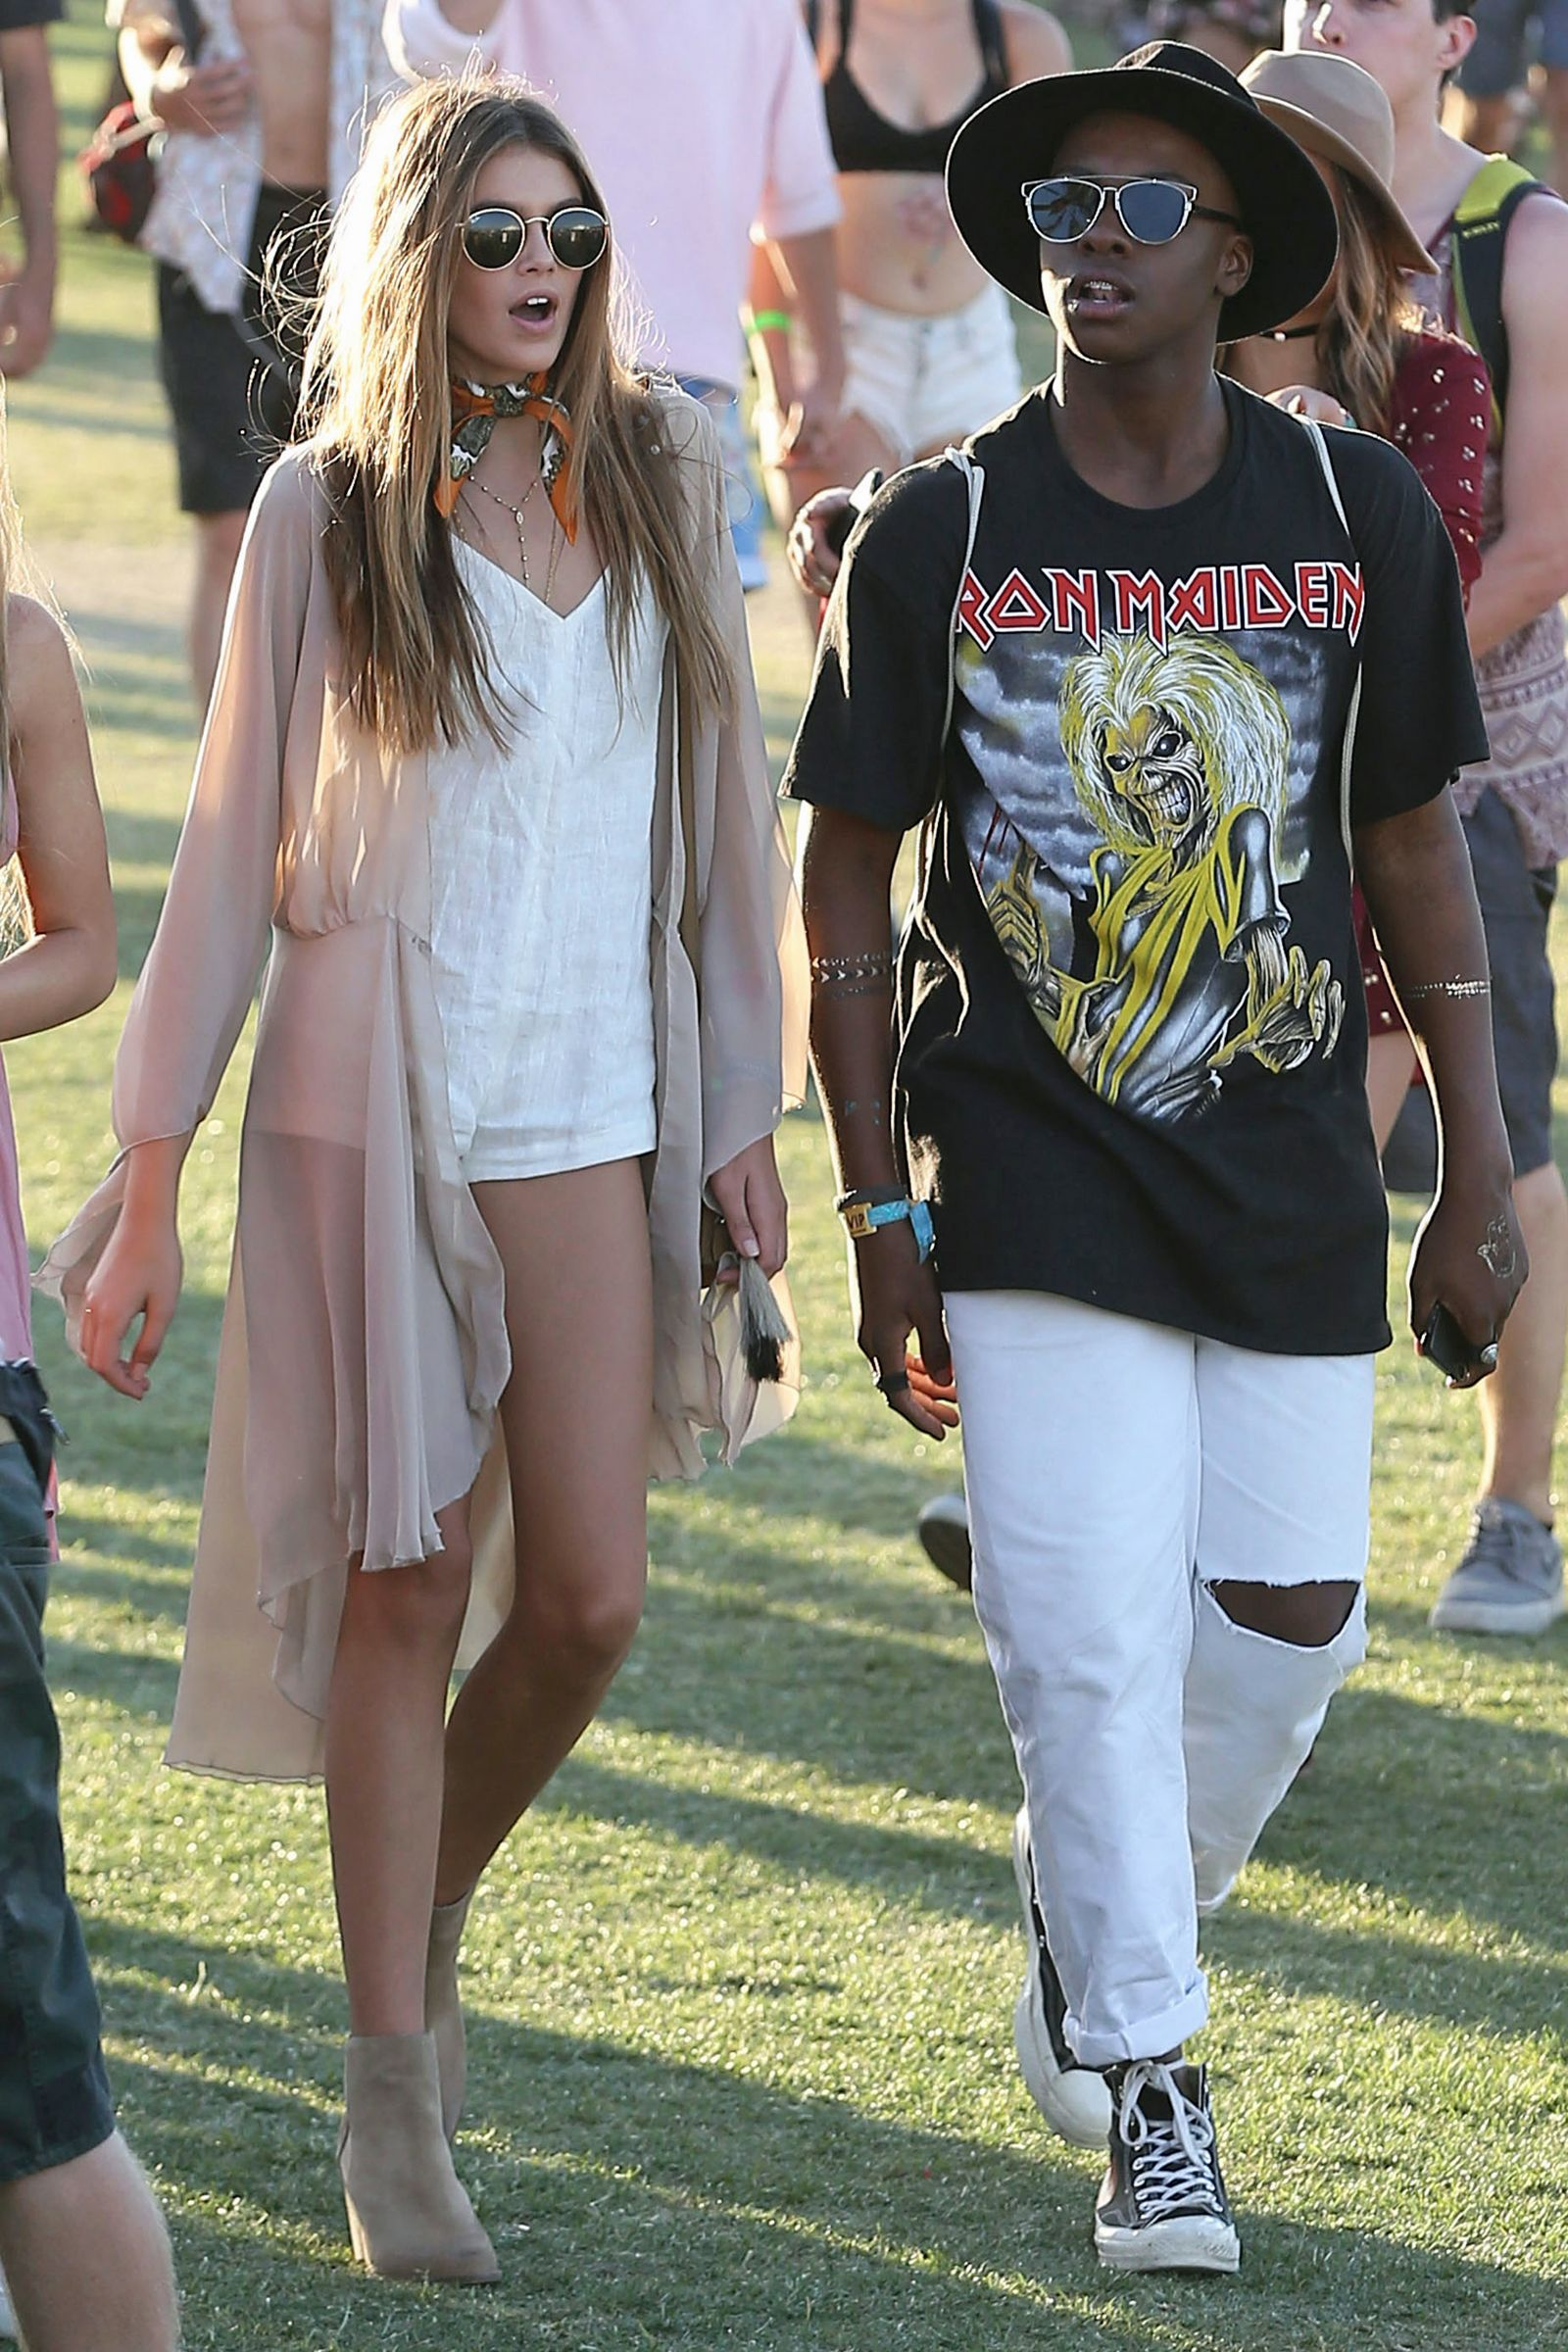 All The Celebrities At Coachella This Year | Kaia Gerber White Romper Outfit And Coachella